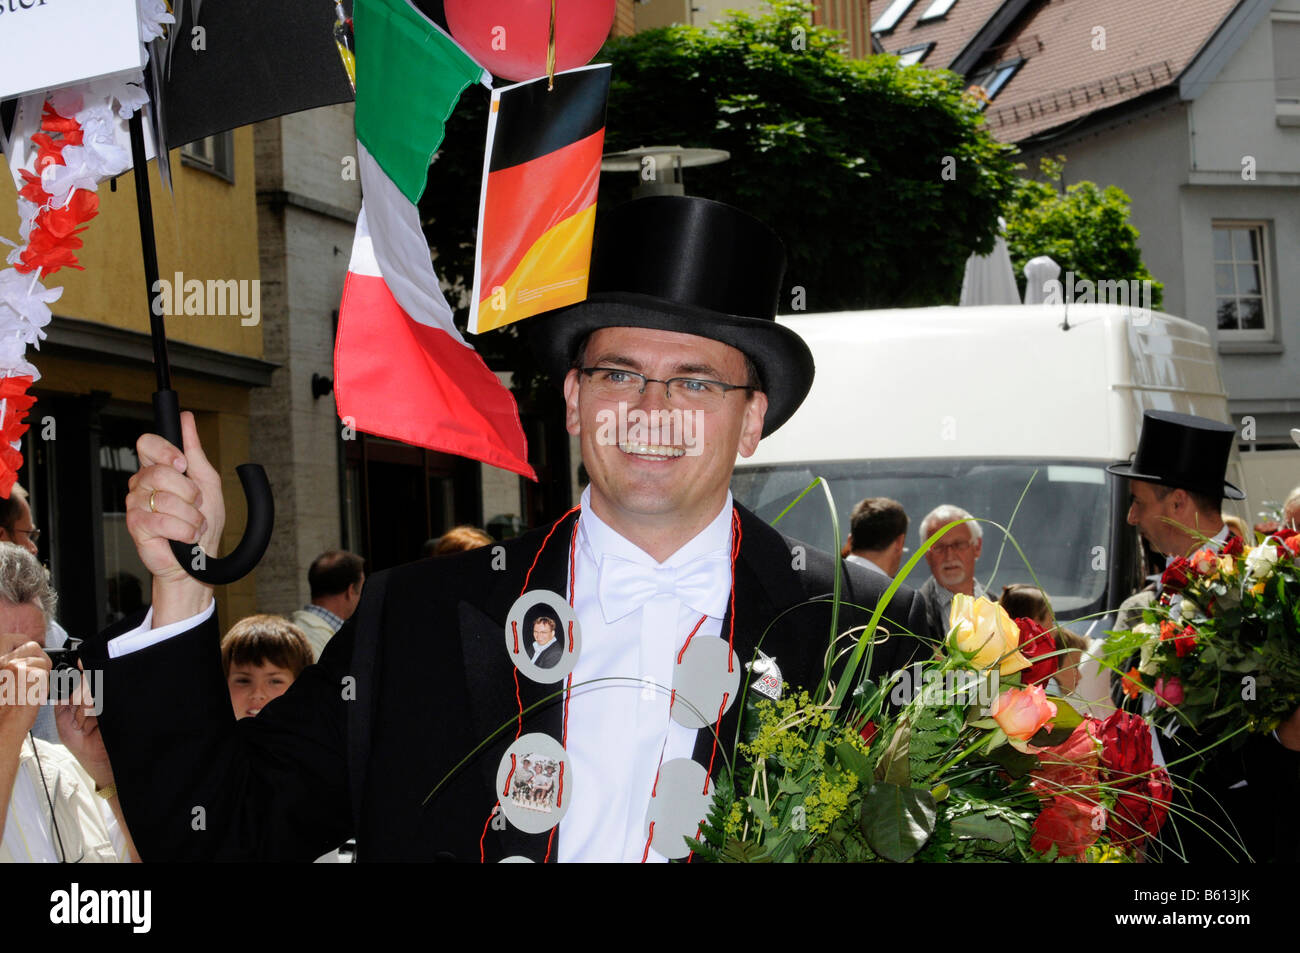 Dr. Blaese, 40-year-old mayor, Gmuender city festival, parade of the 40-year-old people, Schwaebisch Gmuend, Baden - Stock Image